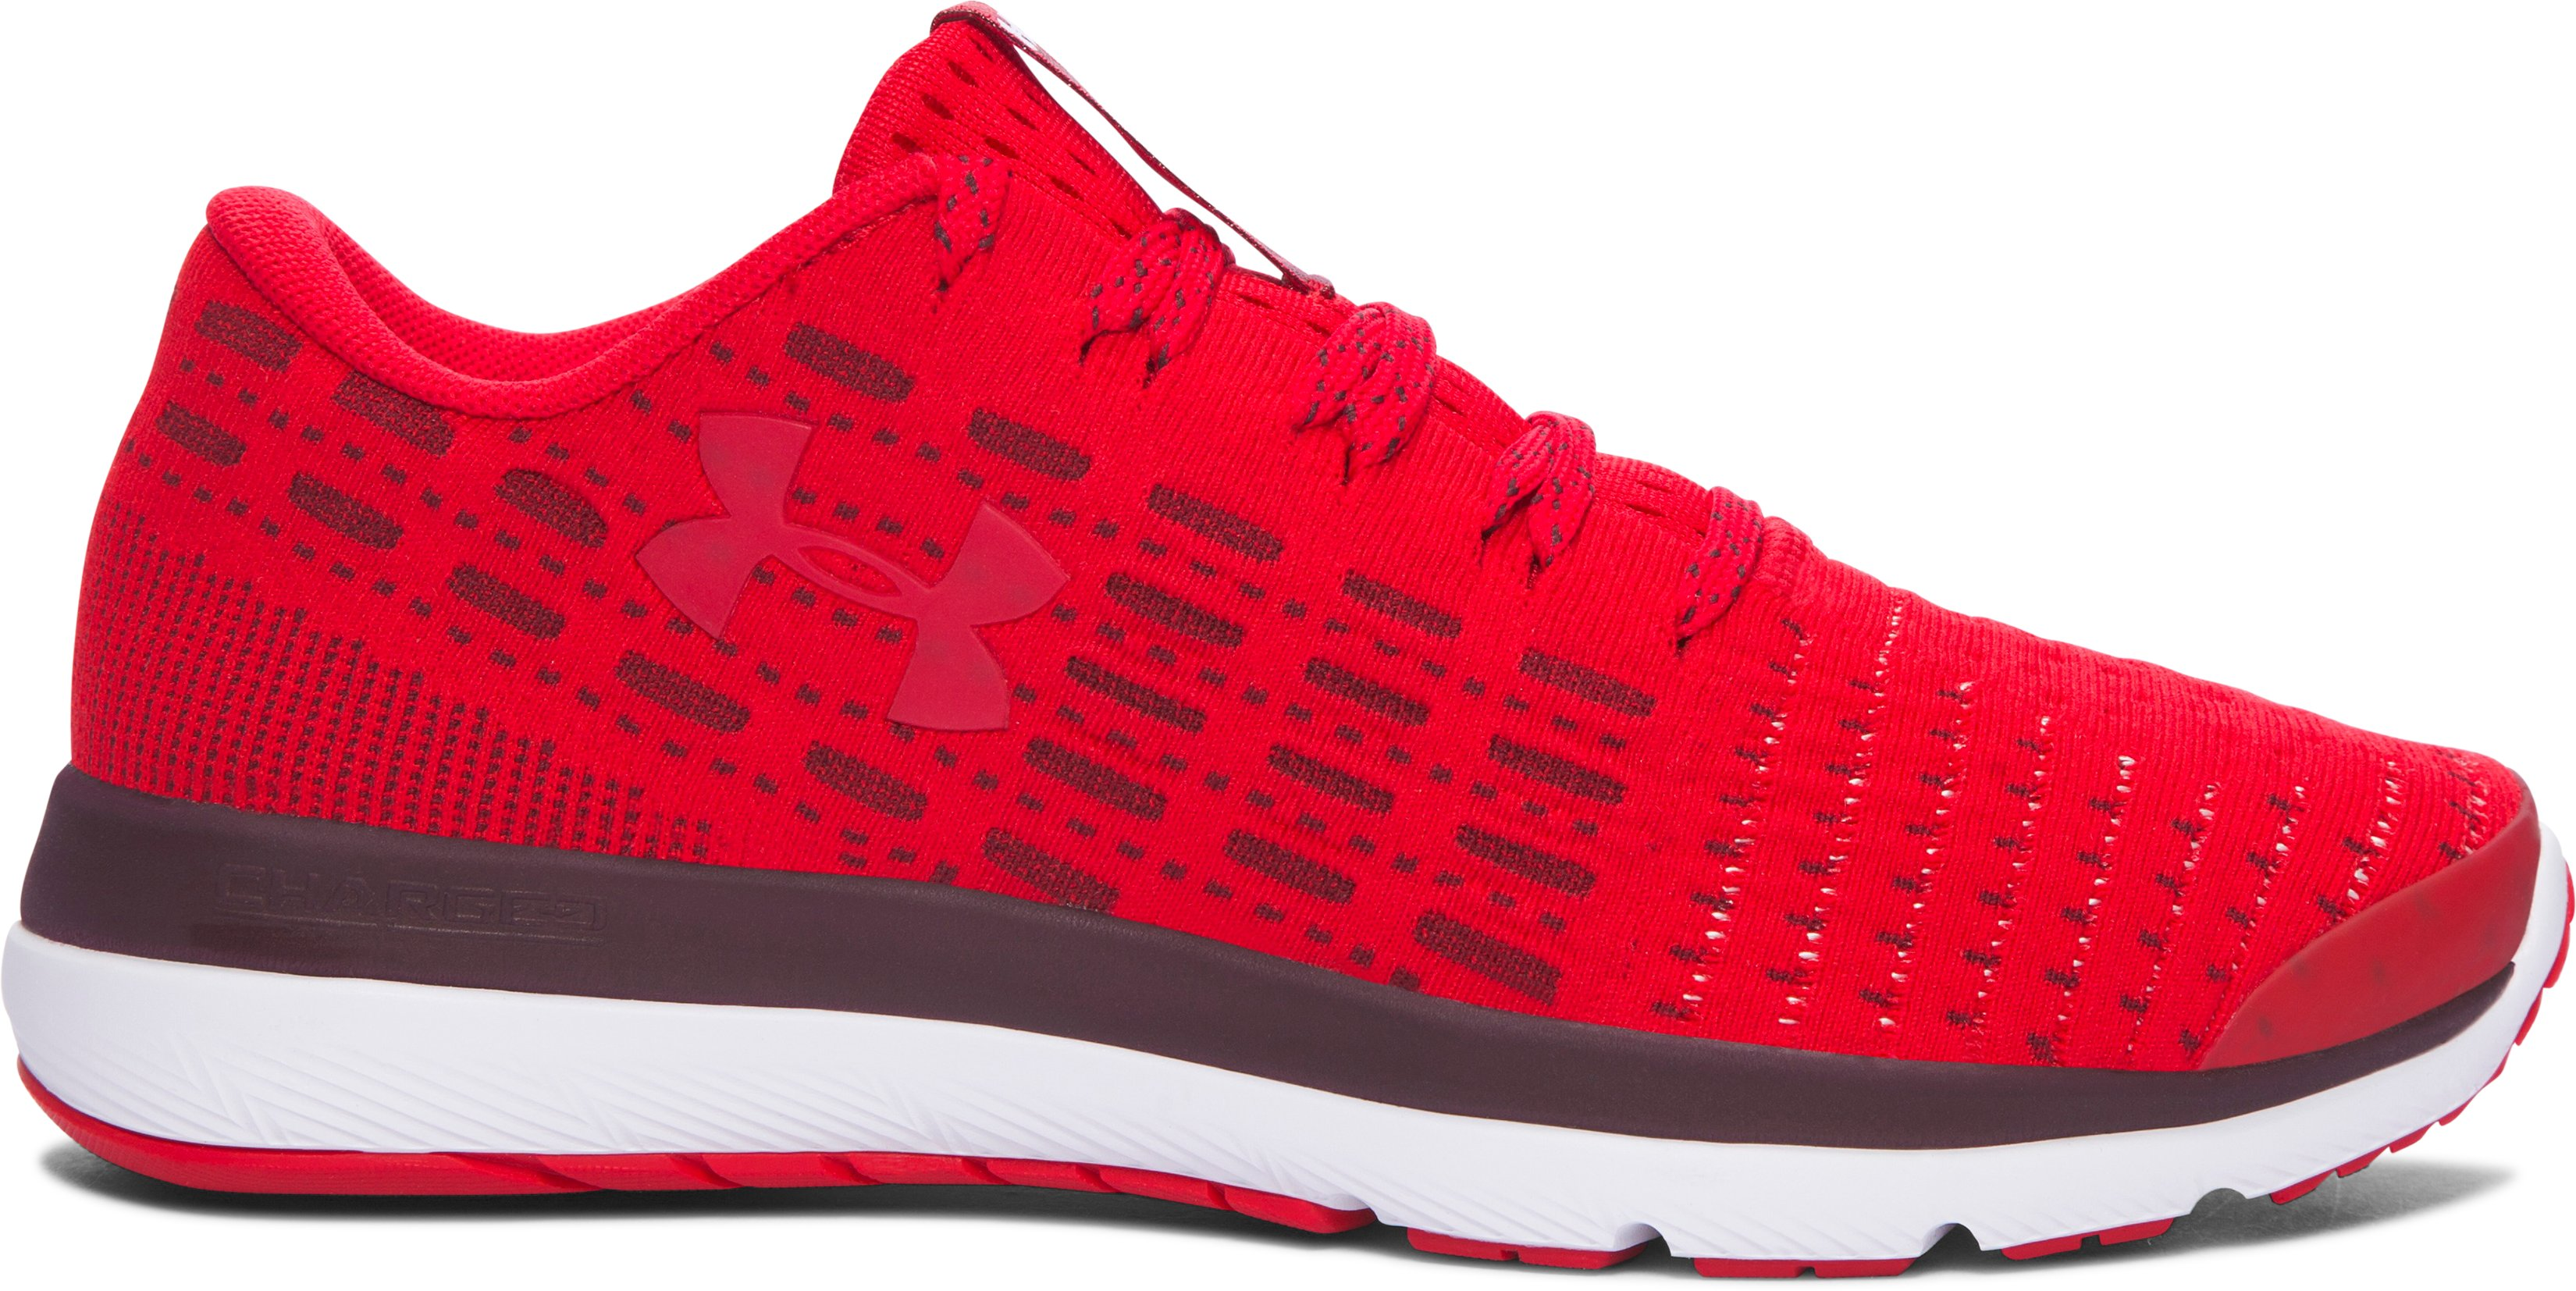 Boys' Grade School UA Threadborne Slingflex Shoes, Red